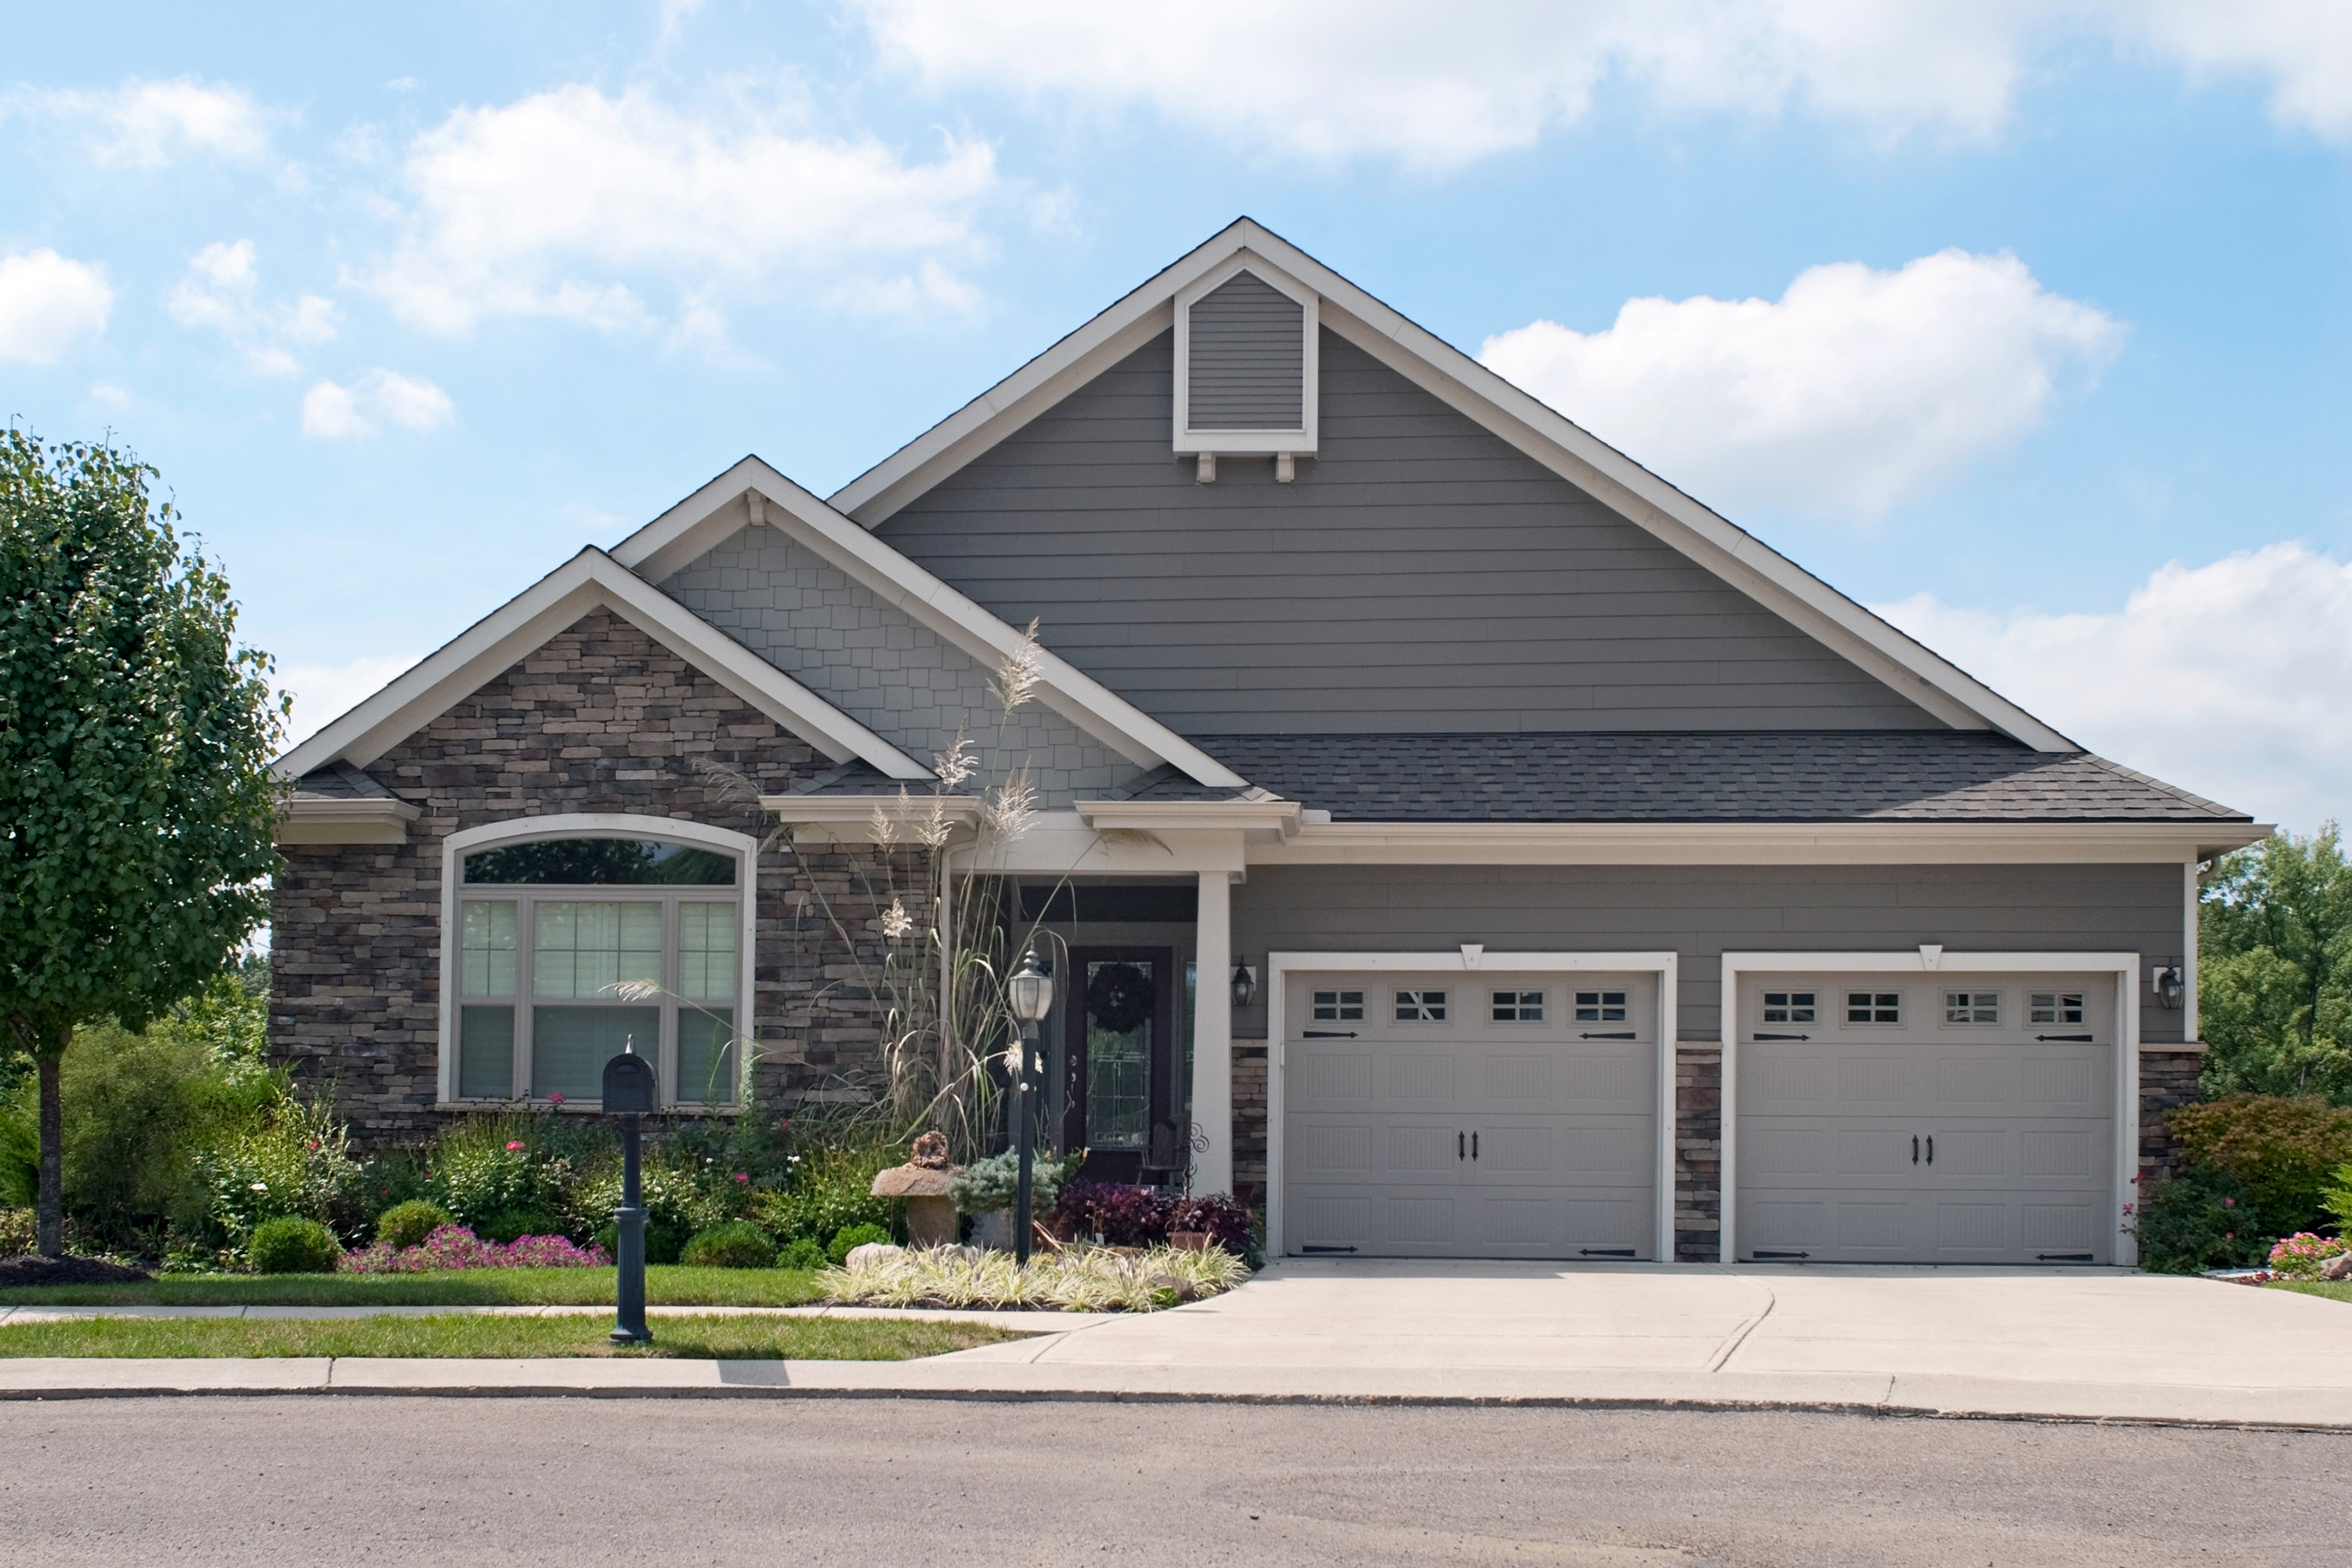 Home with two-car garage.